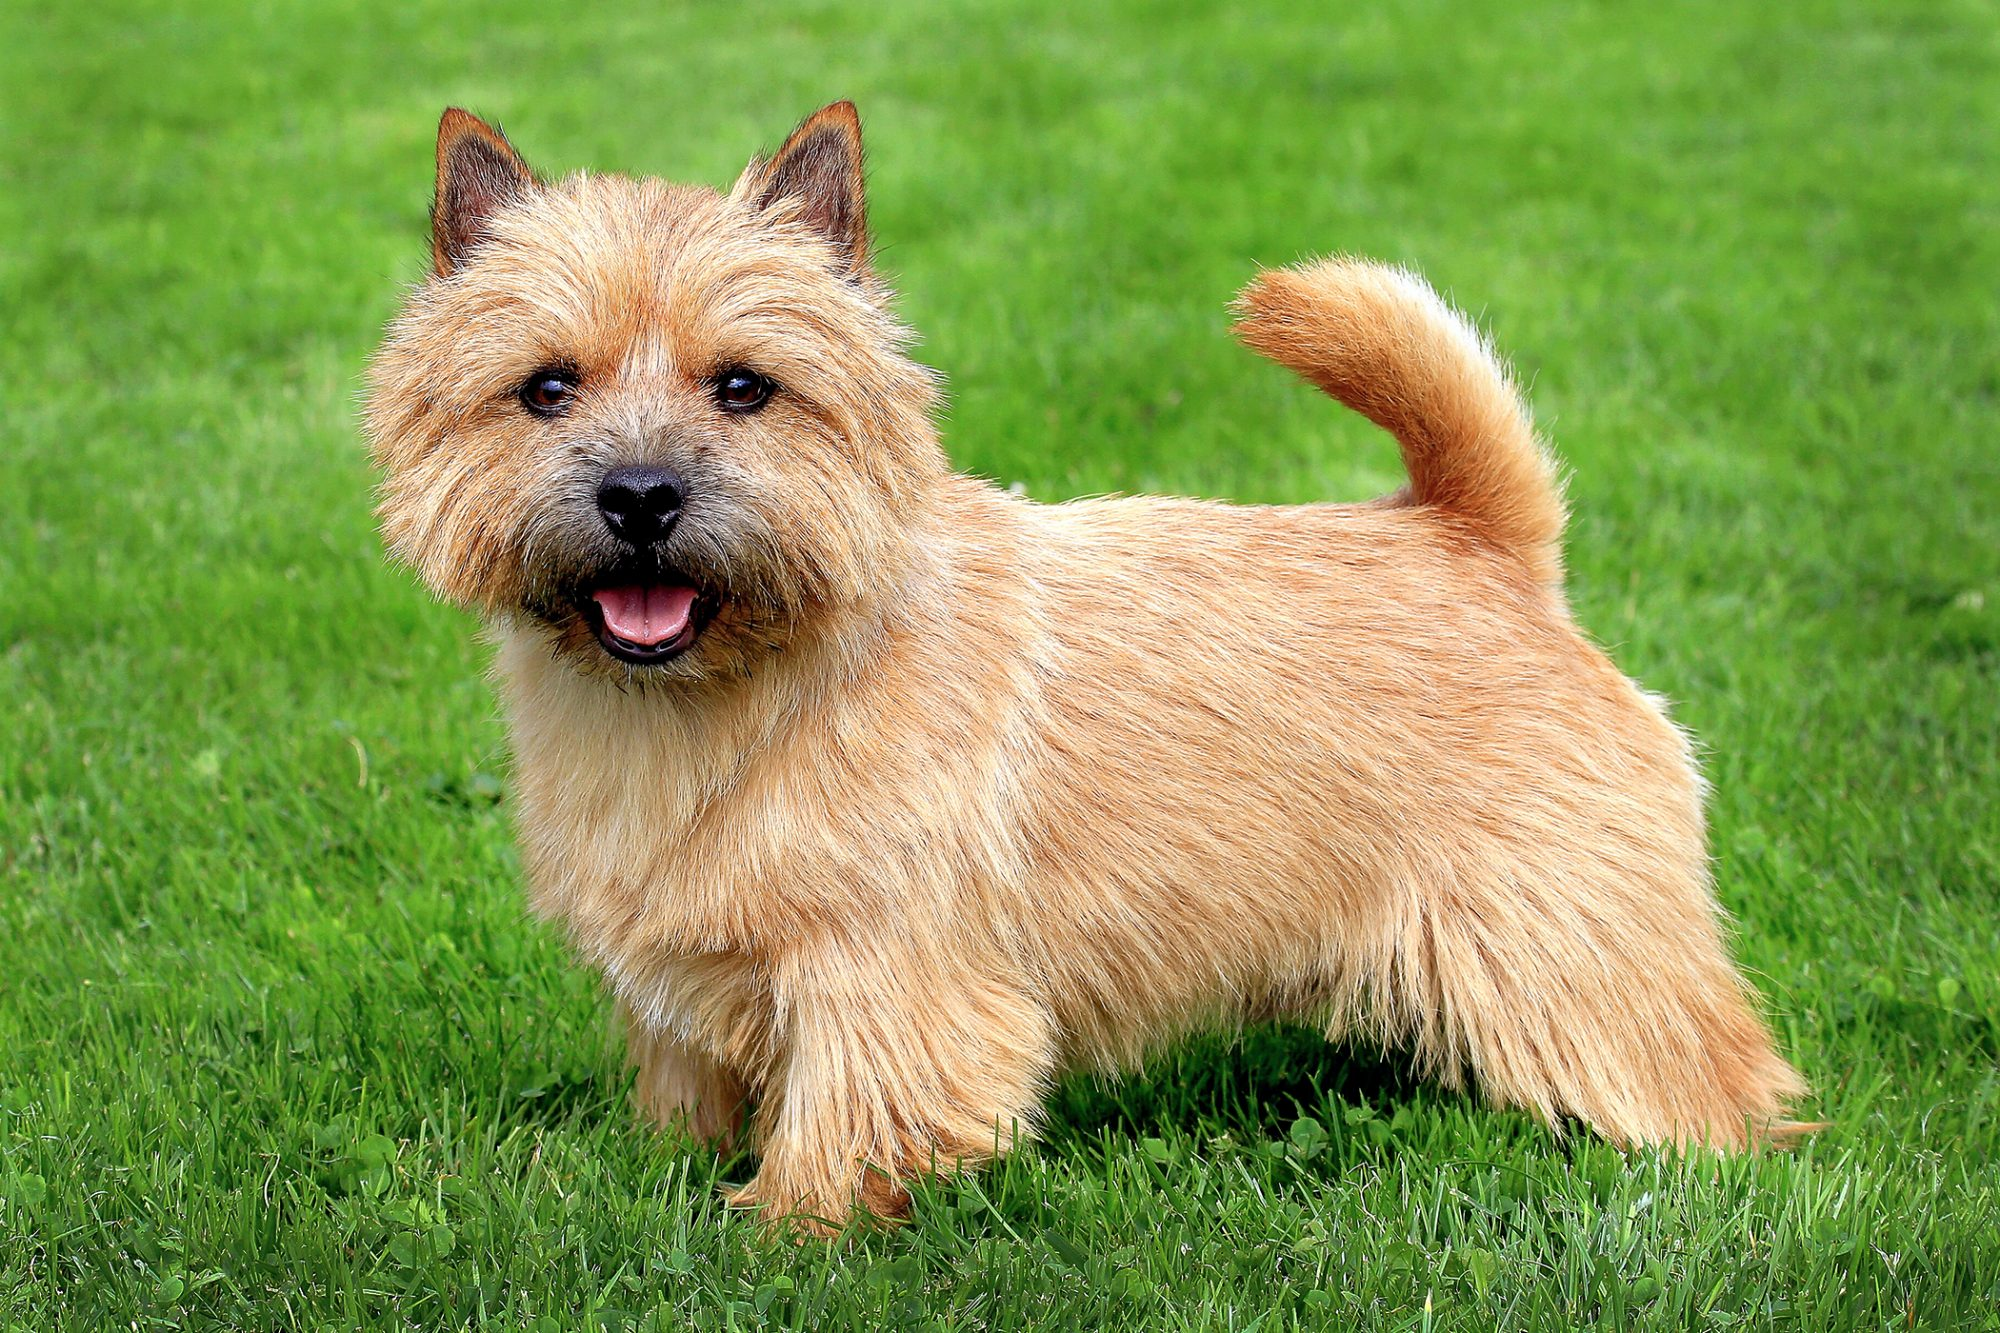 Long-haired tan Norwich terrier stands in grass and looks at camera